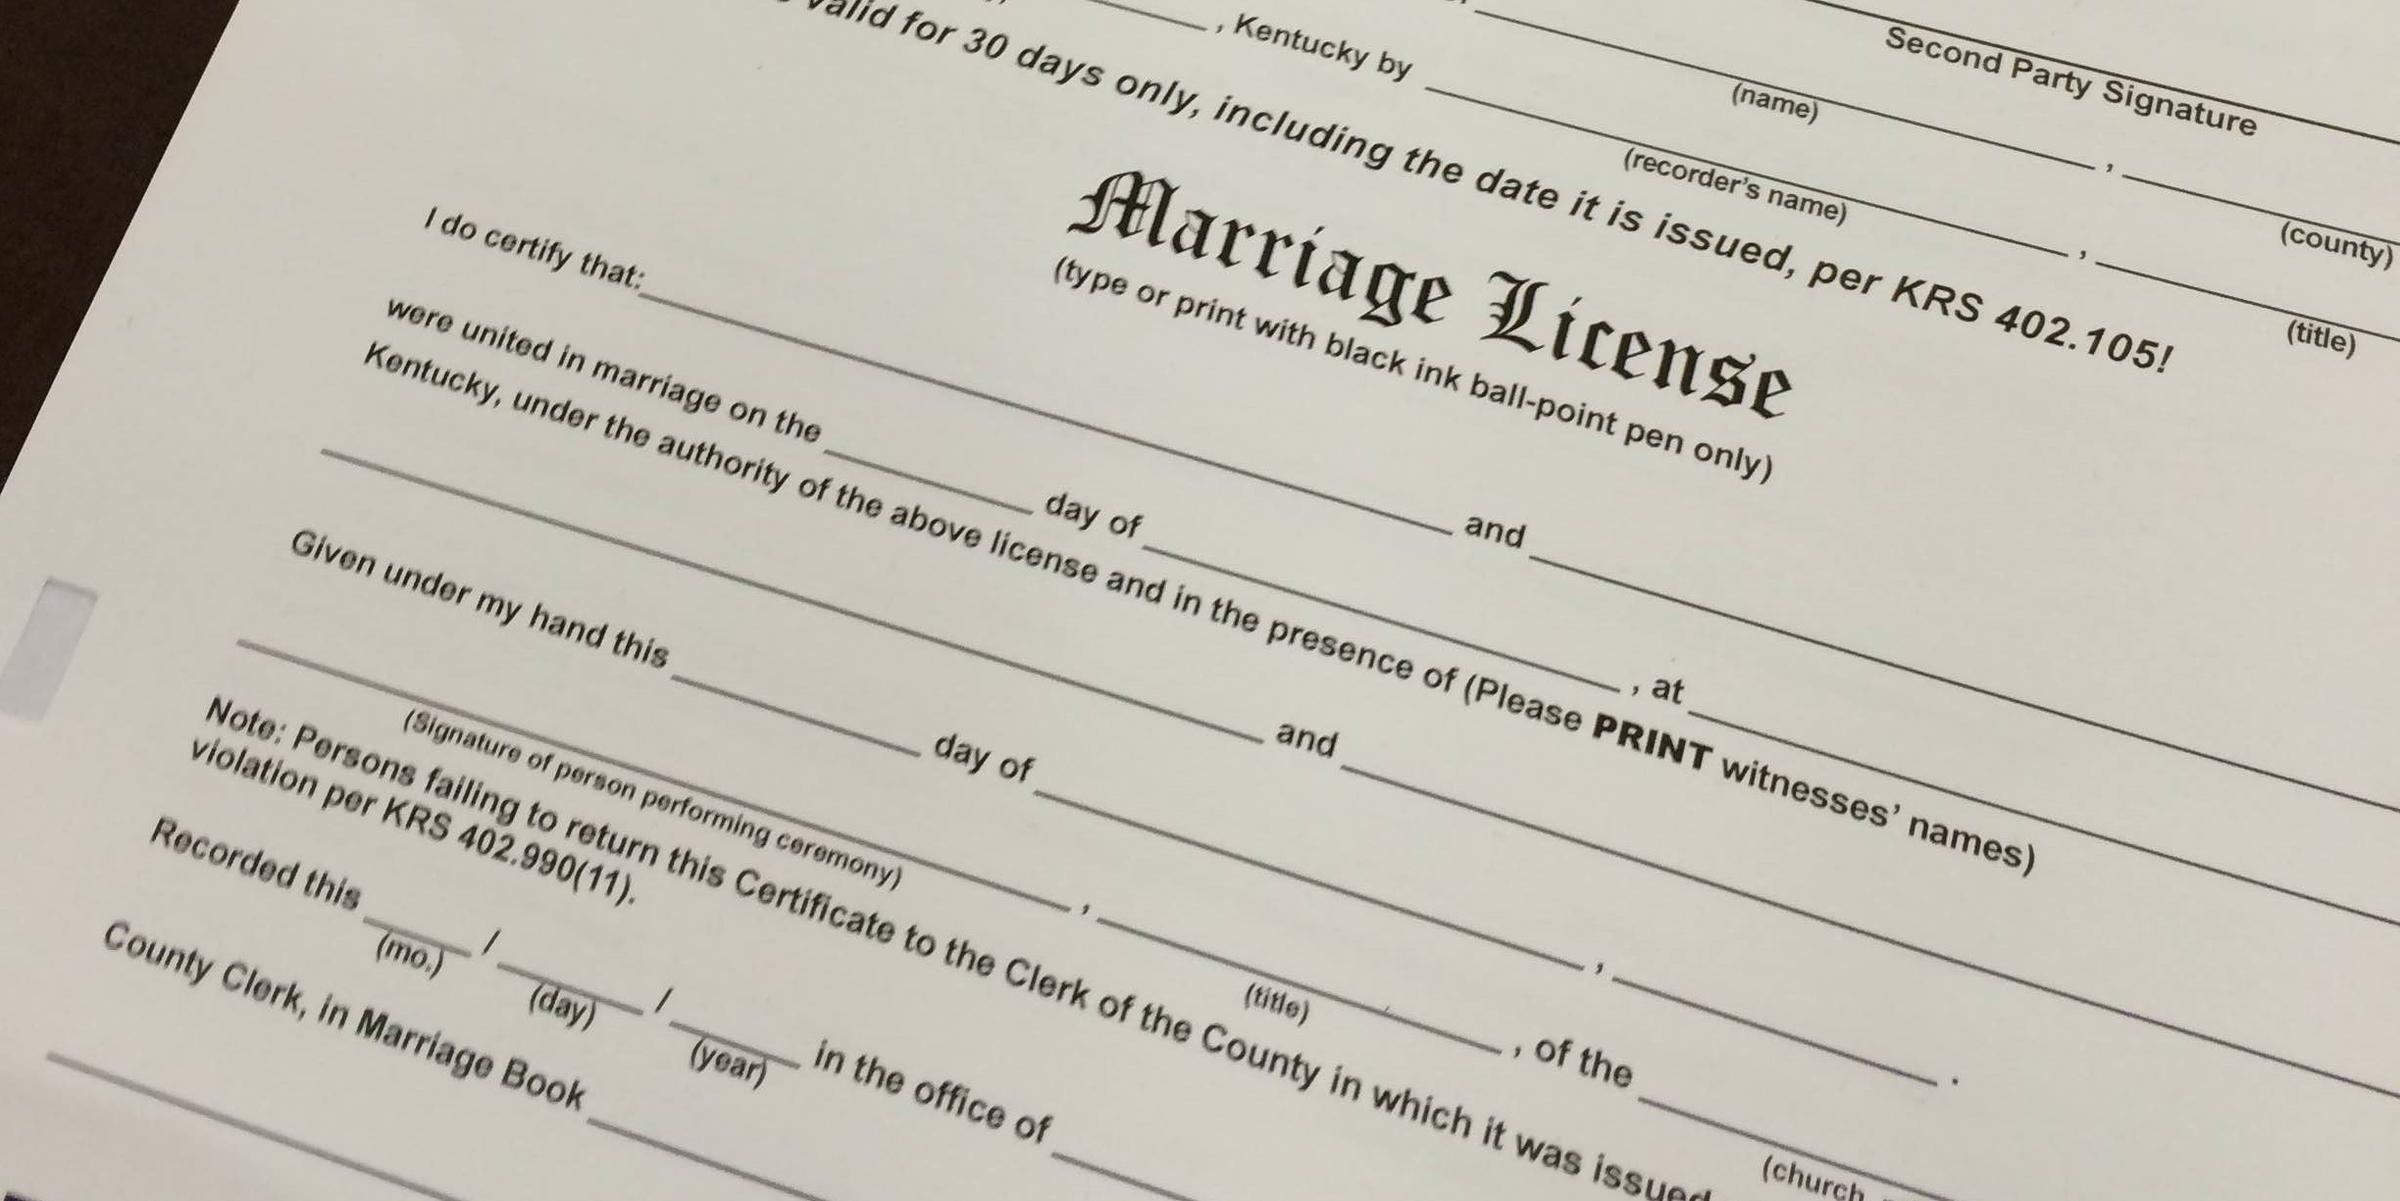 Couples Seek Legal Costs in Kentucky Marriage License Case